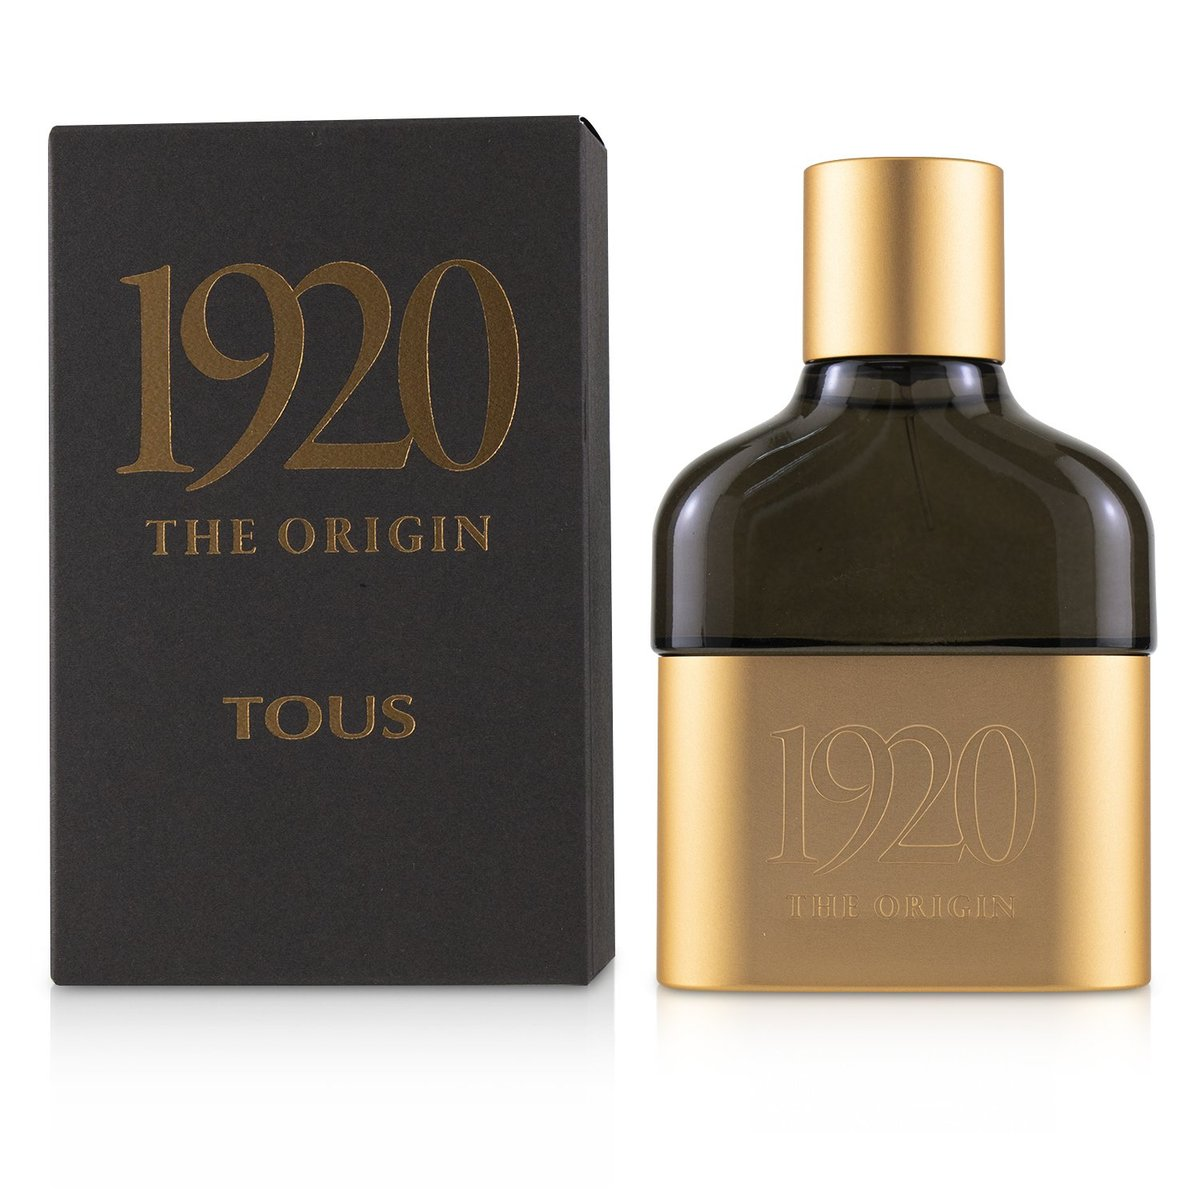 1920 The Origin Eau De Parfum Spray